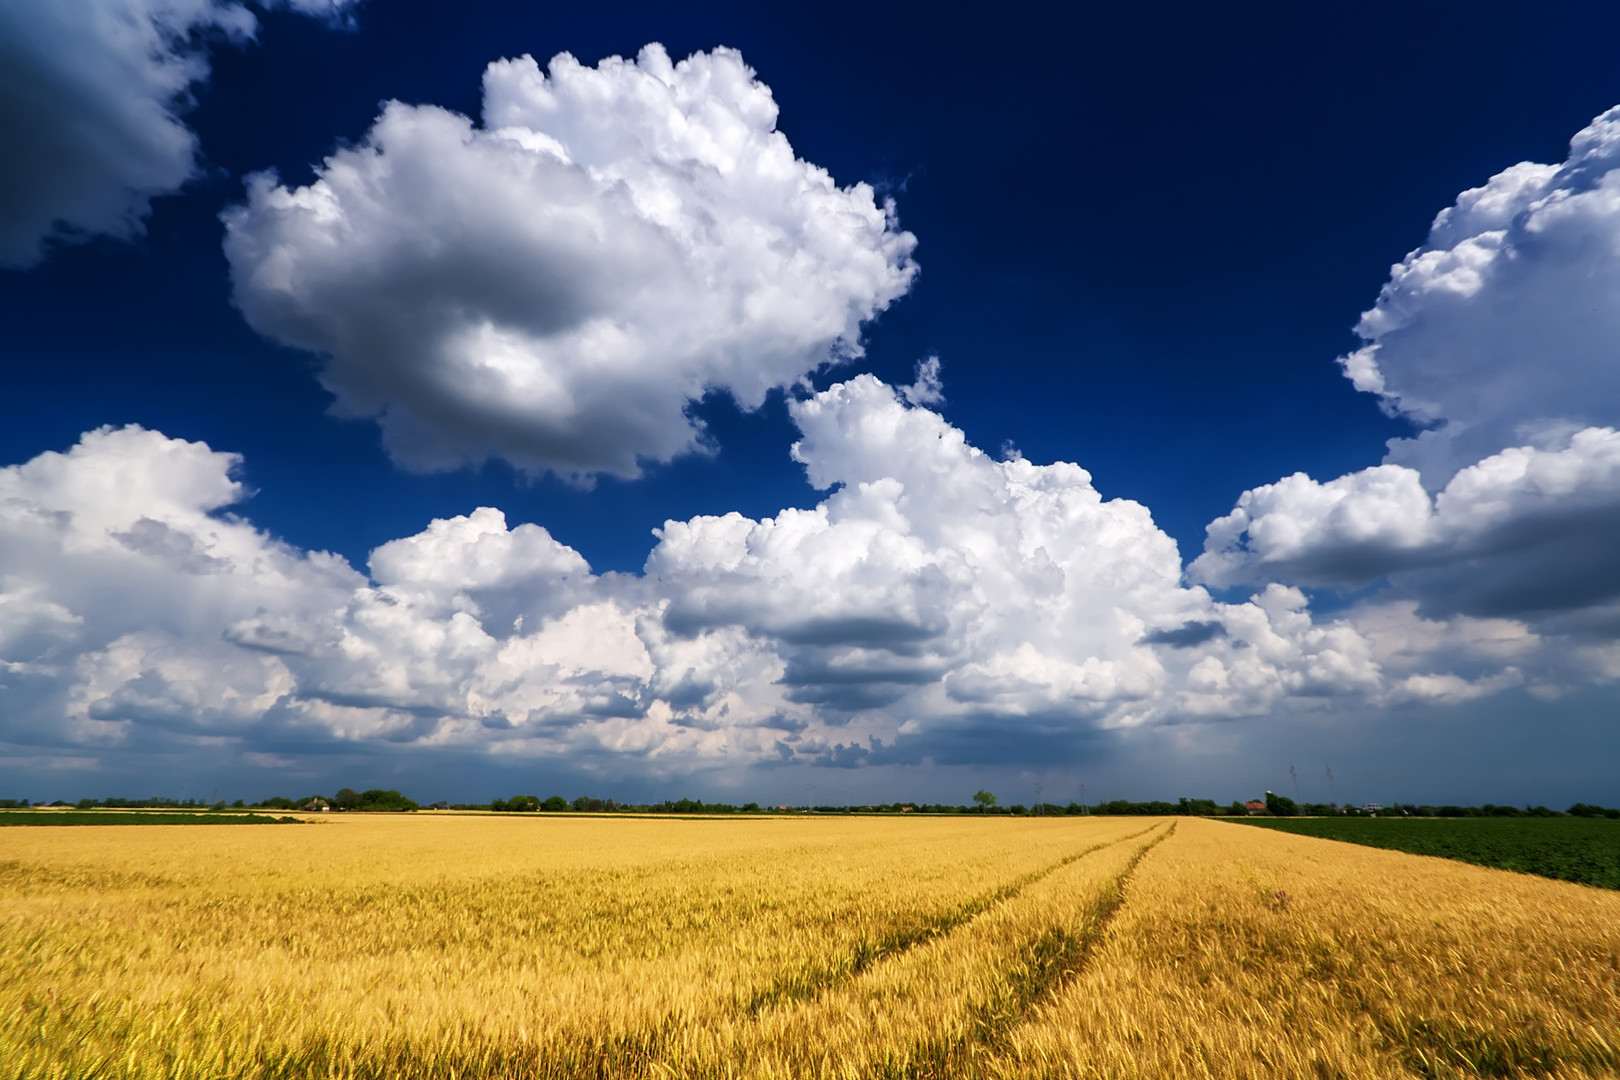 Golden fields and big white clouds